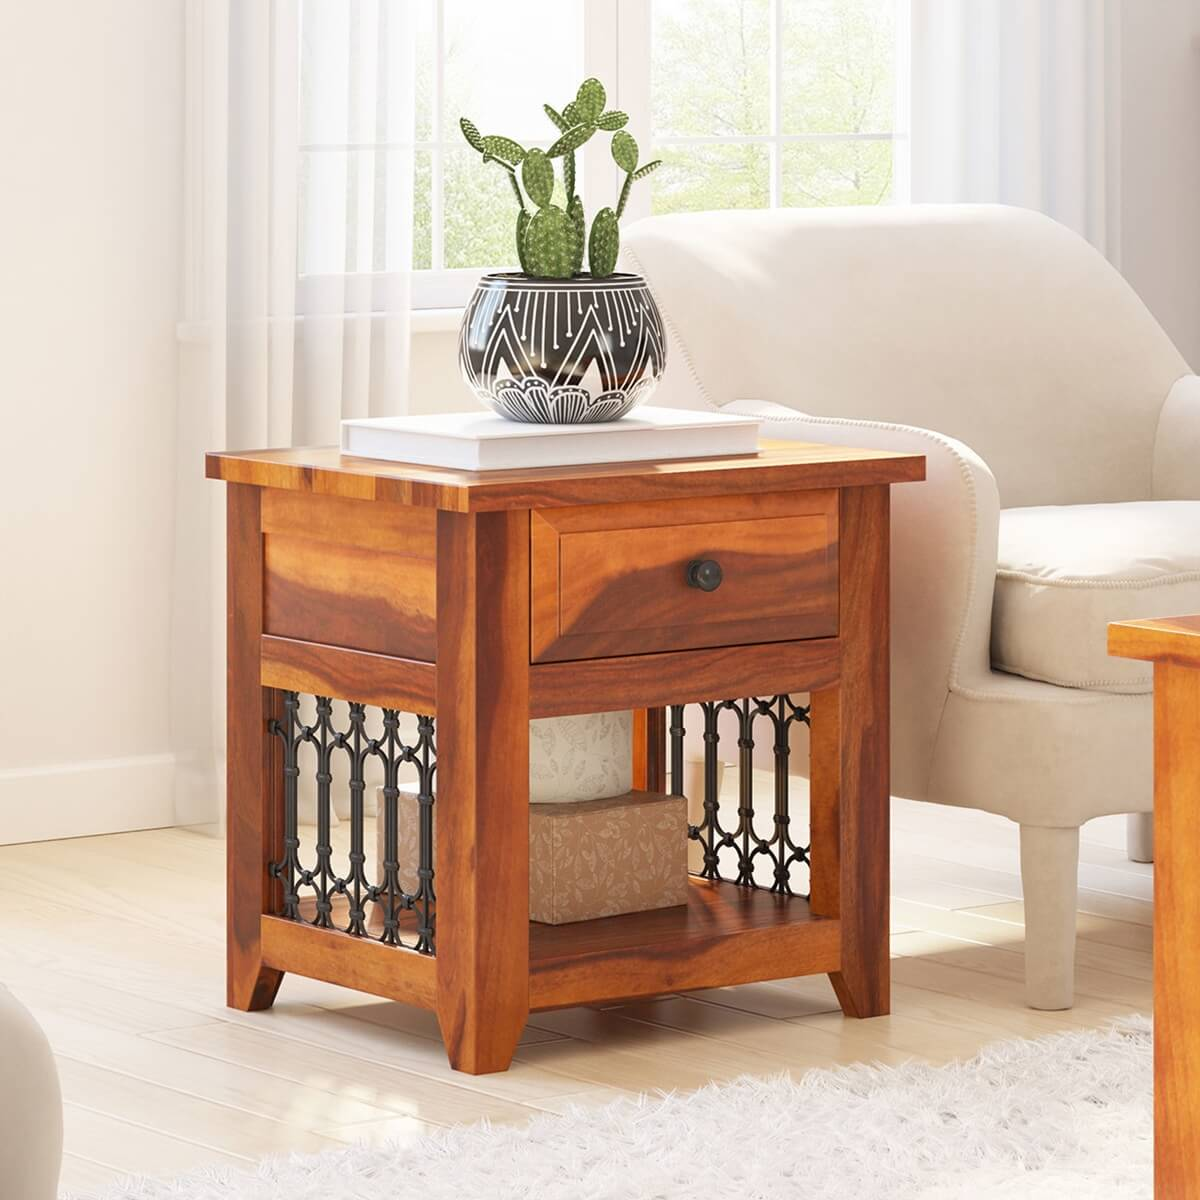 San Francisco Iron Grill Rustic Solid Wood End Table With Drawer